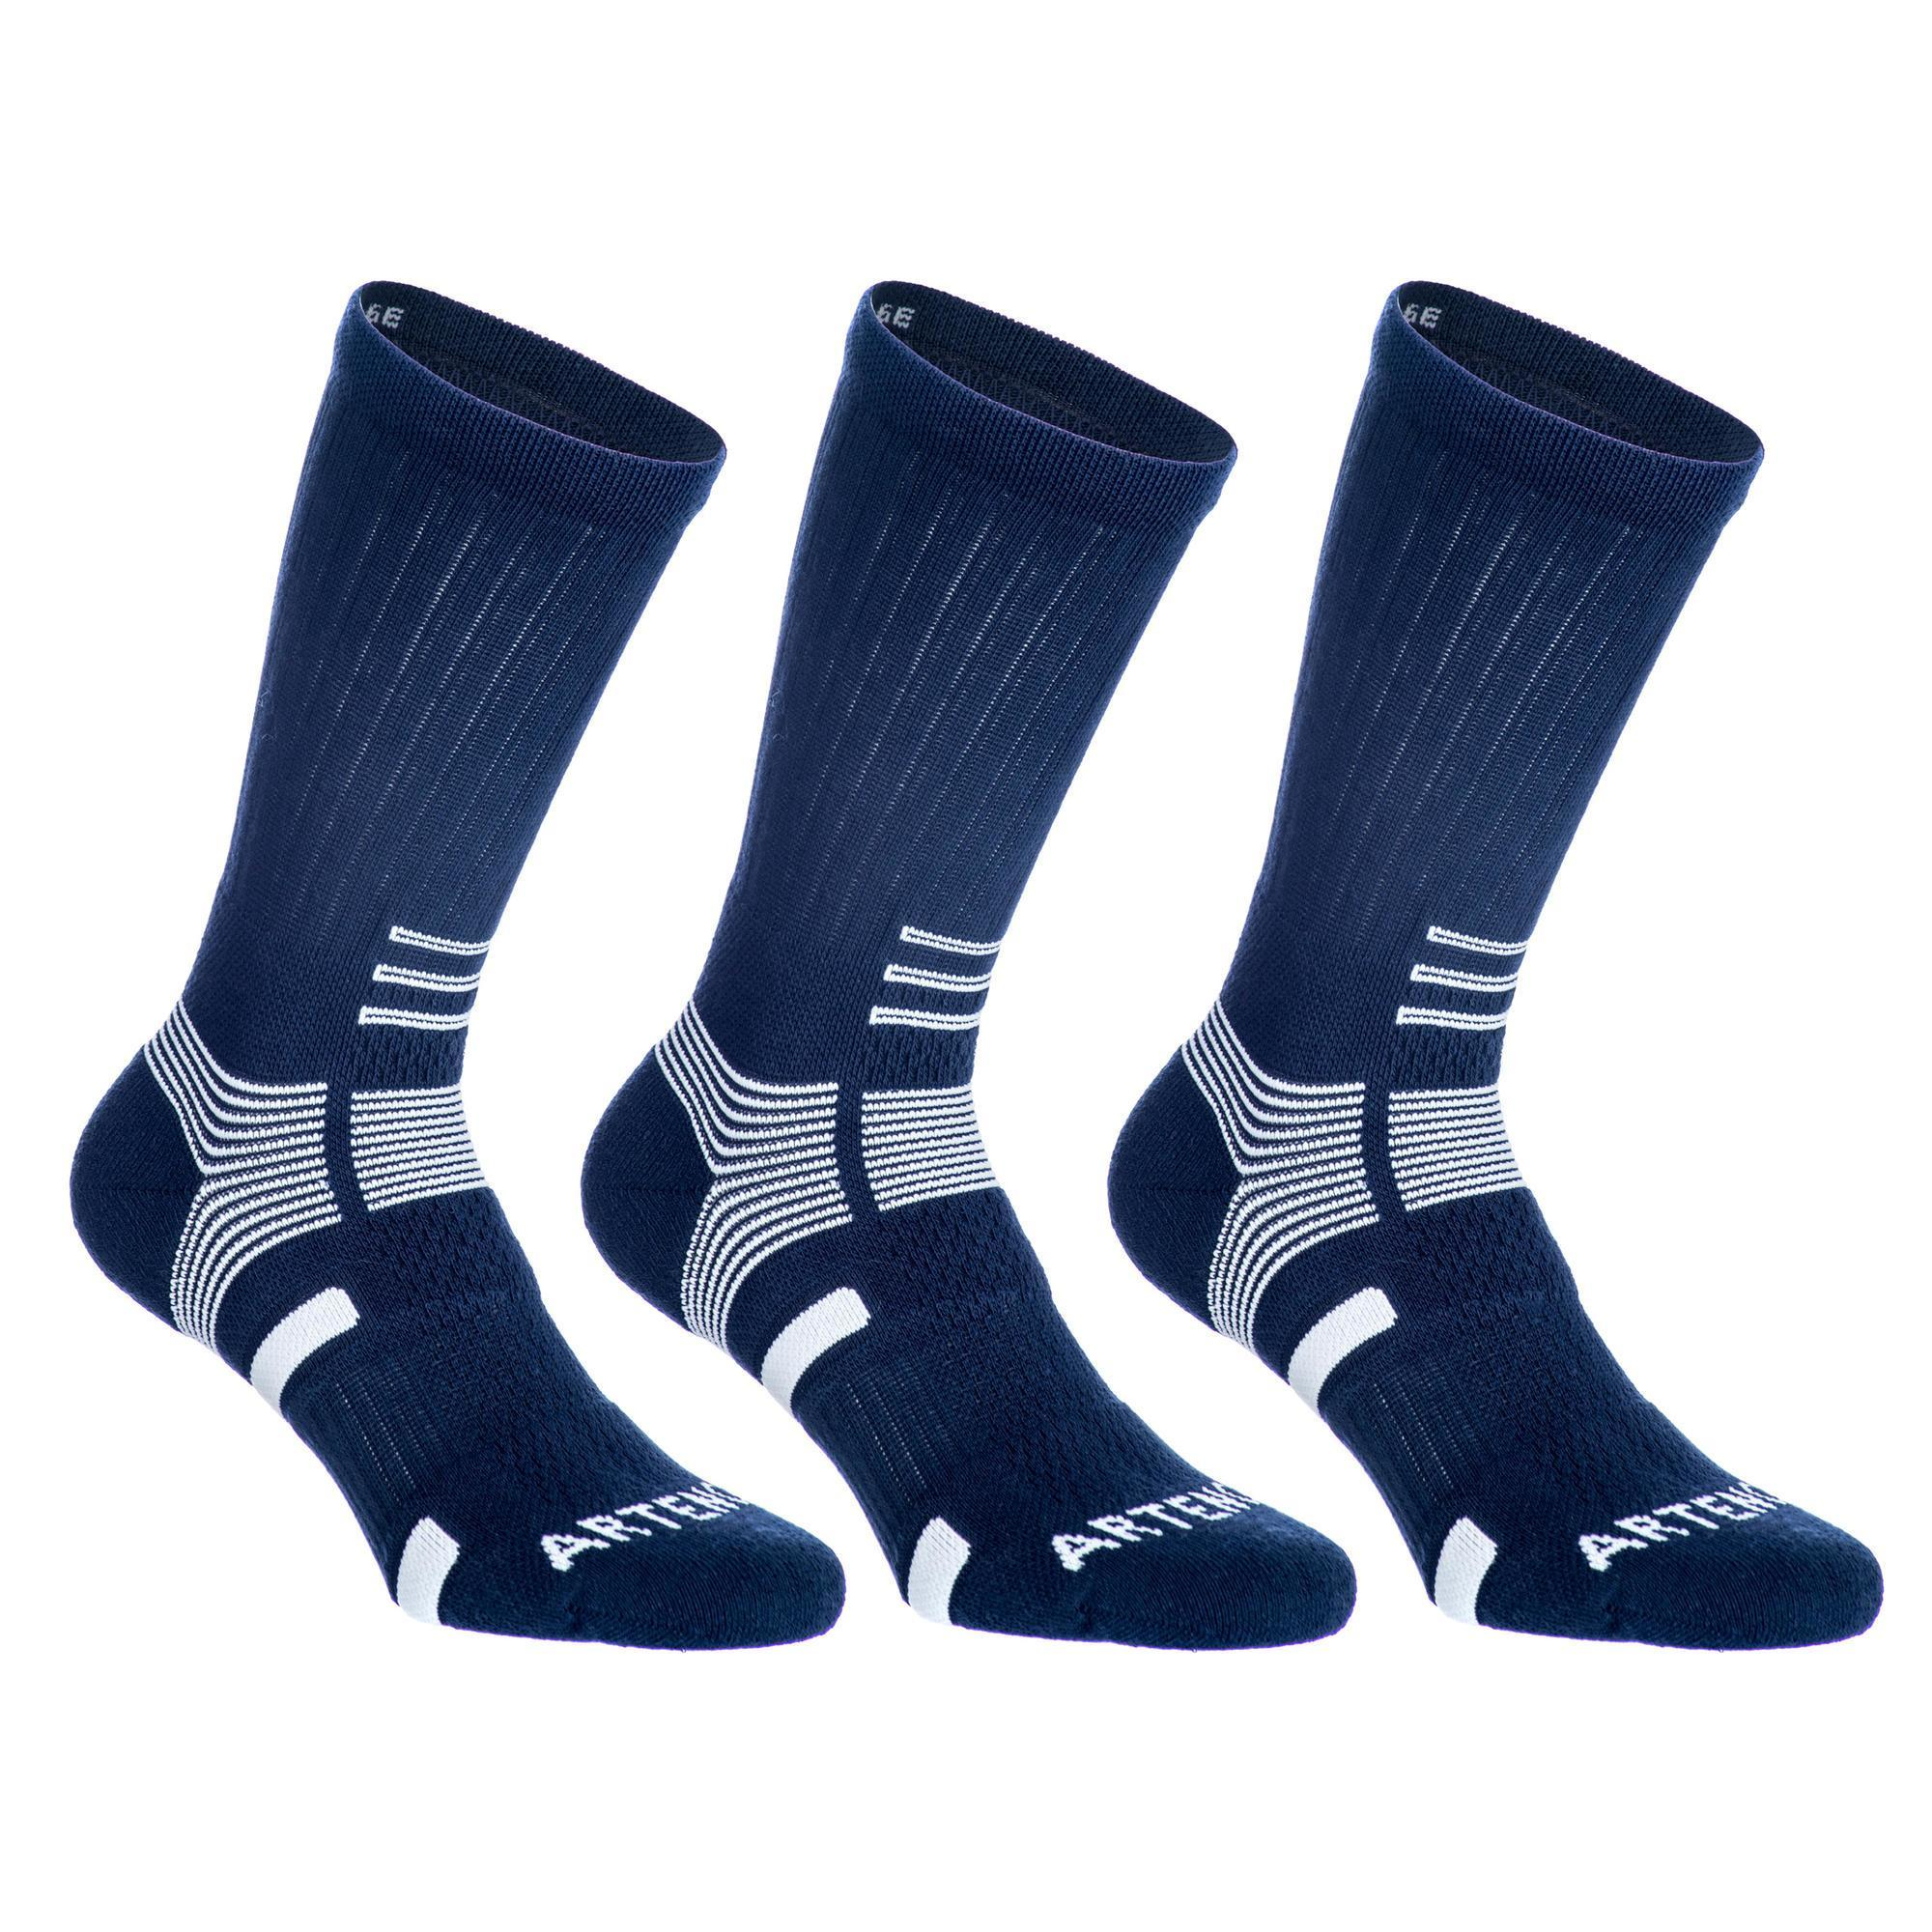 timeless design ed190 c70f8 Chaussettes   Decathlon